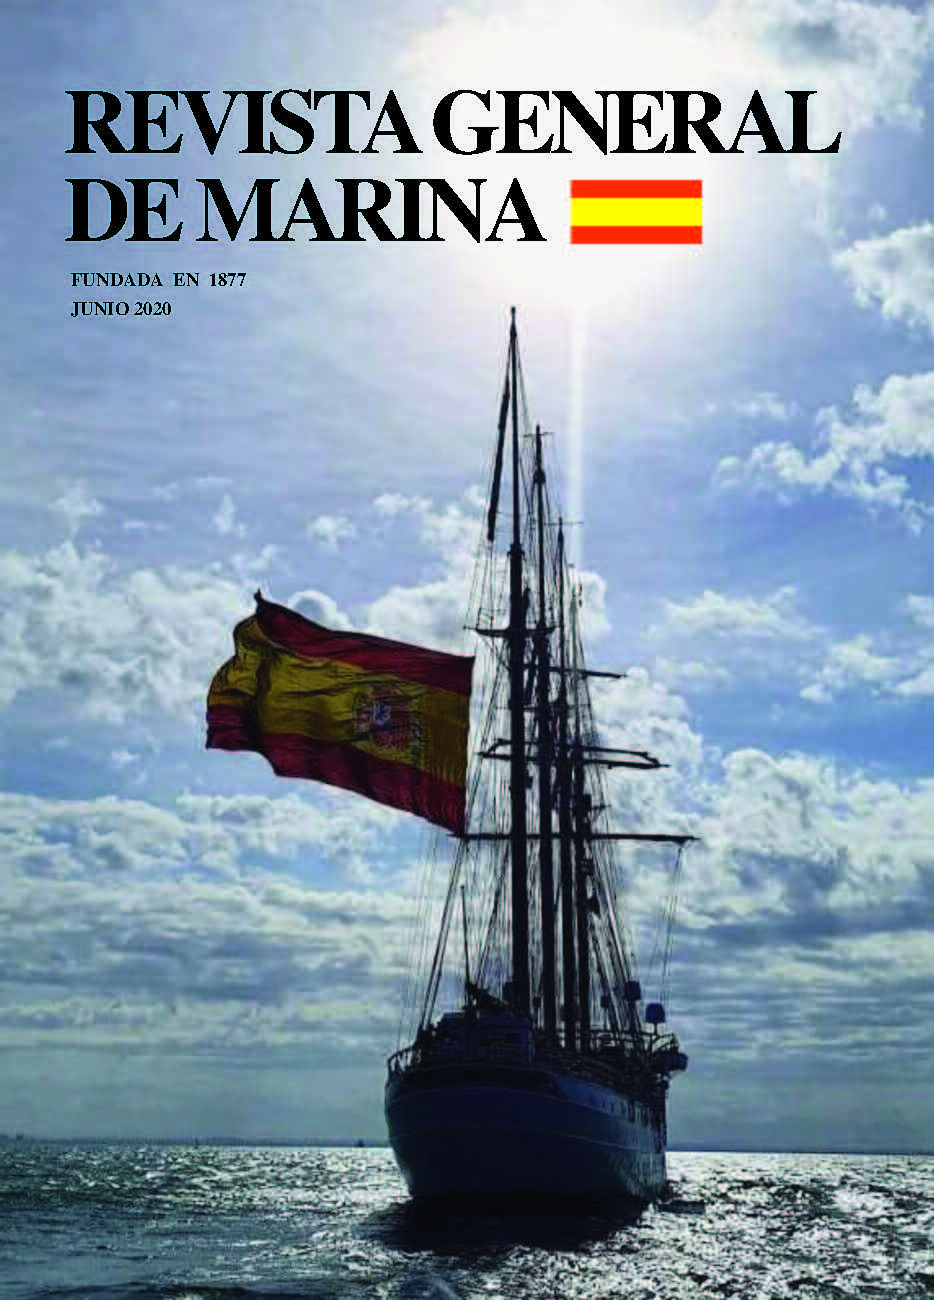 Revista General de Marina Junio 2020